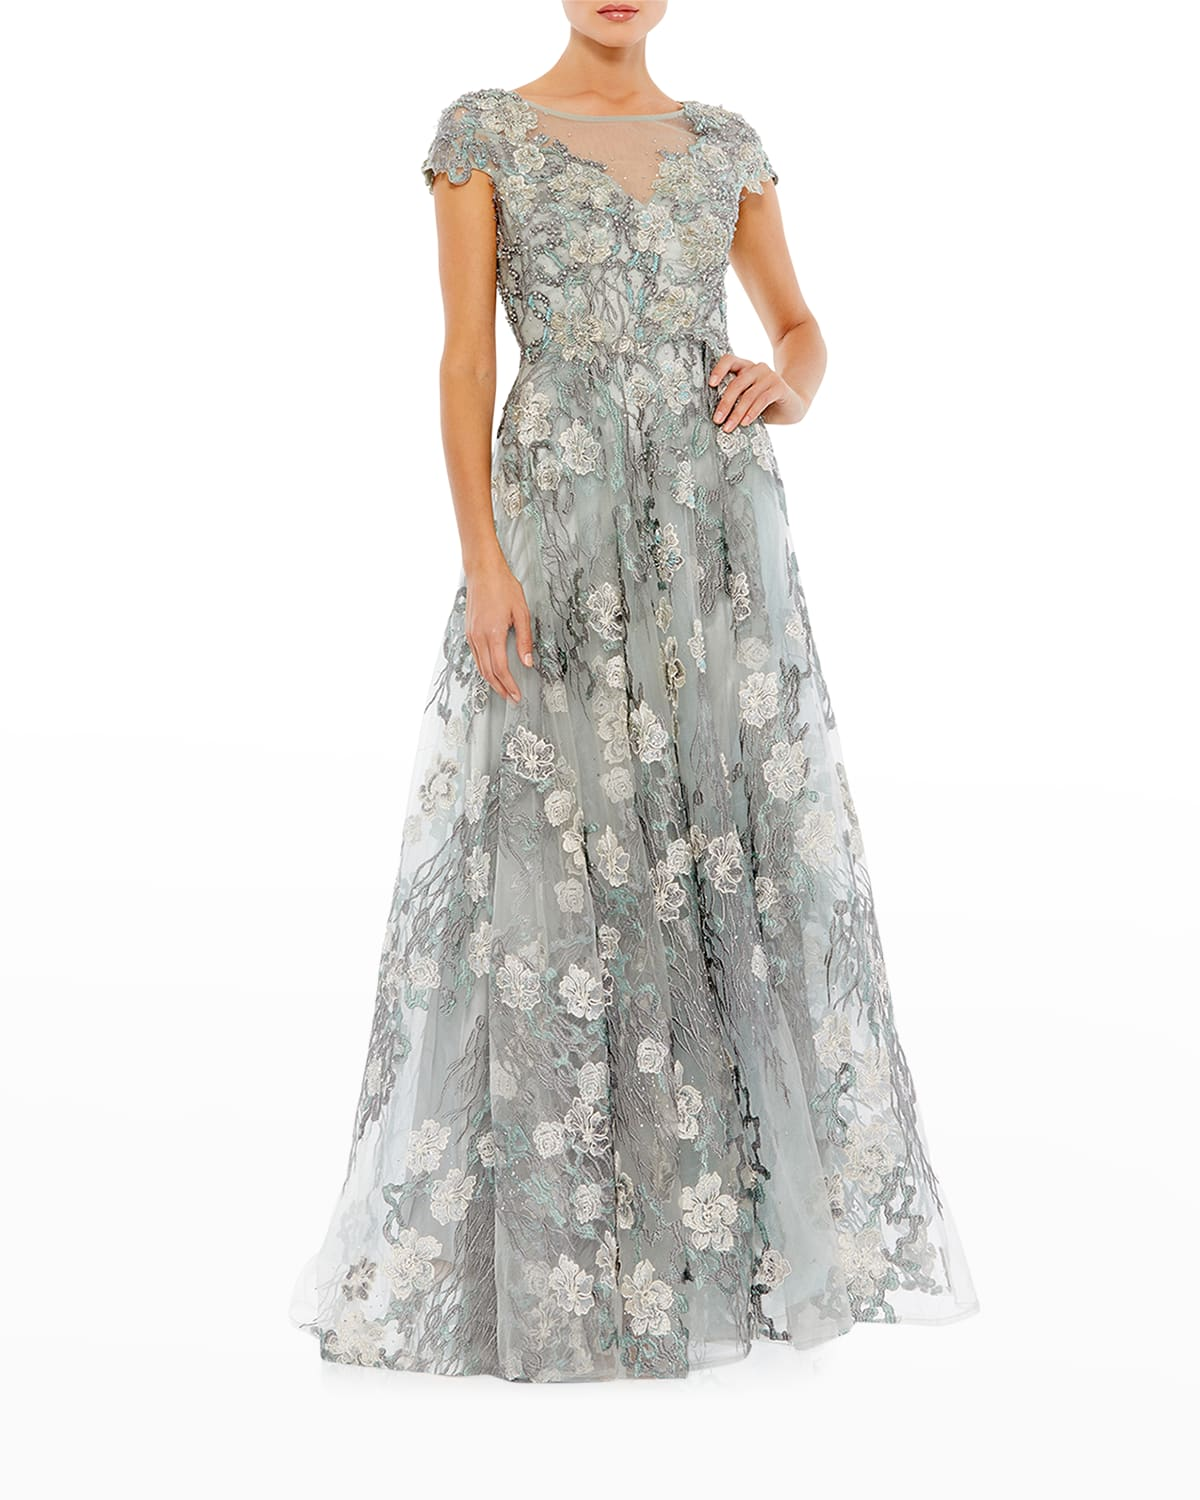 Floral-Embroidered Lace Cap-Sleeve Gown